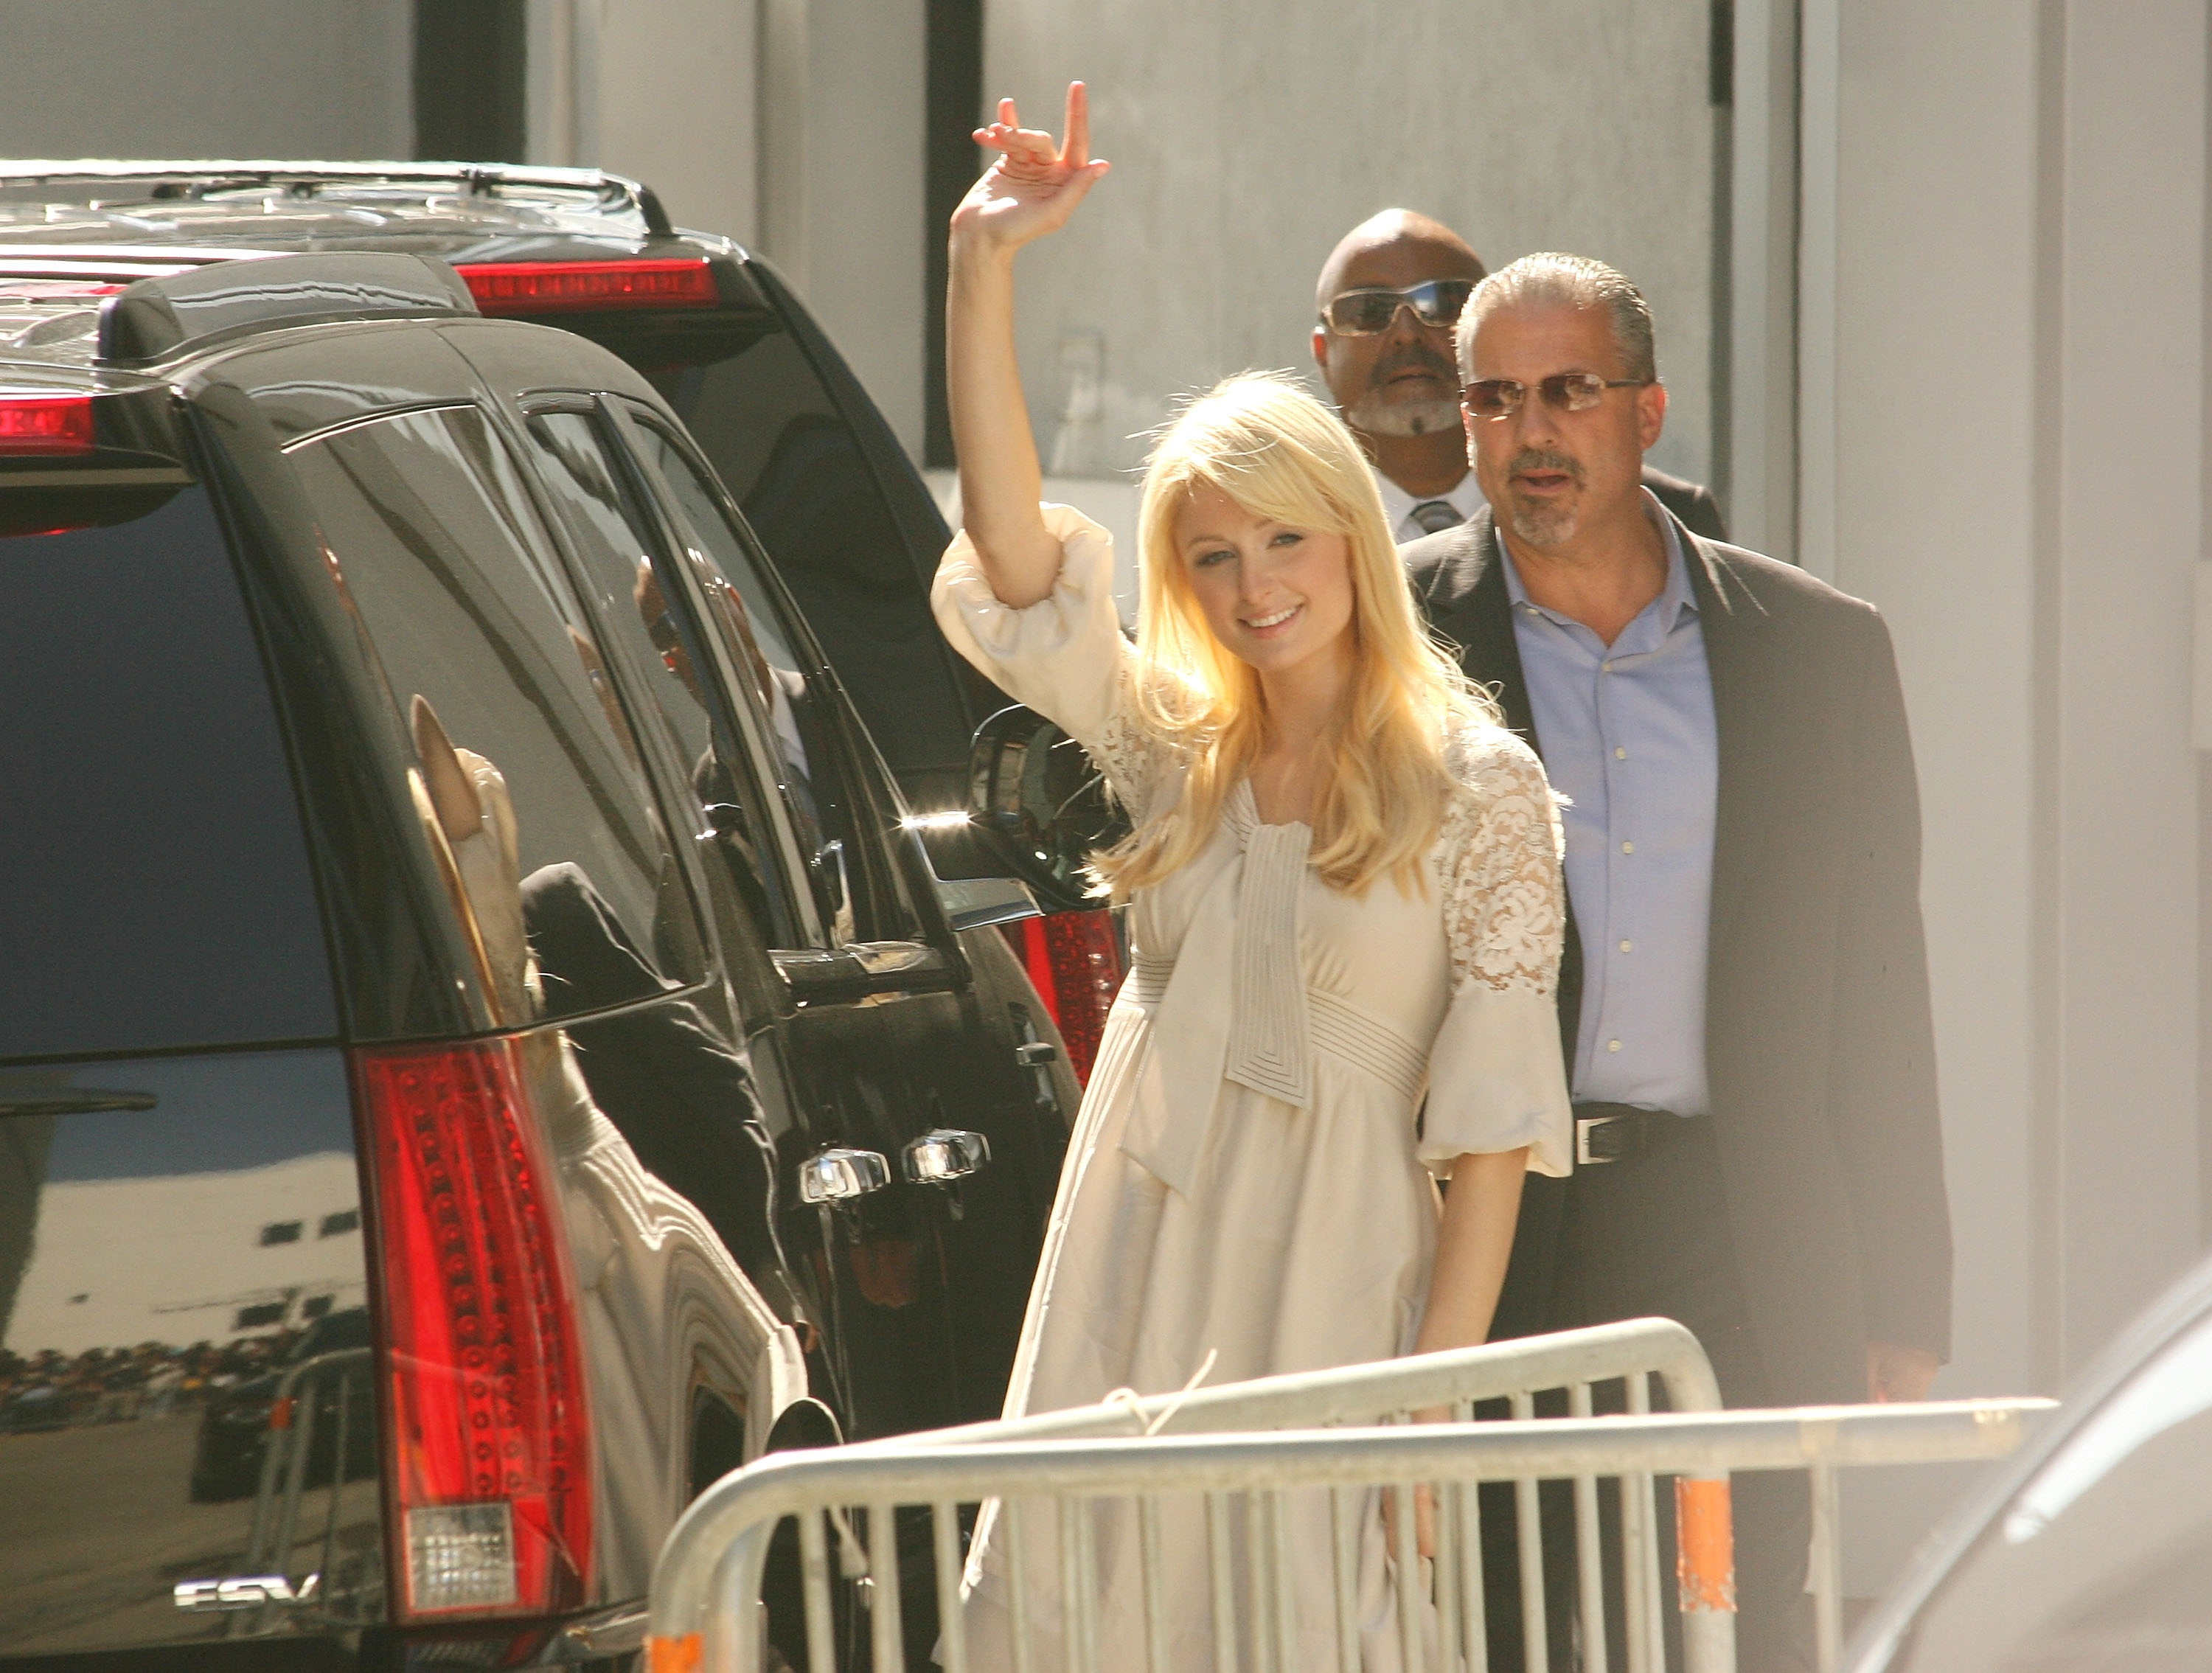 LOS ANGELES, CA - JUNE 27: Paris Hilton waves as she leaves the CNN building for an interview with Larry King on June 27, 2007 in Los Angeles, California.